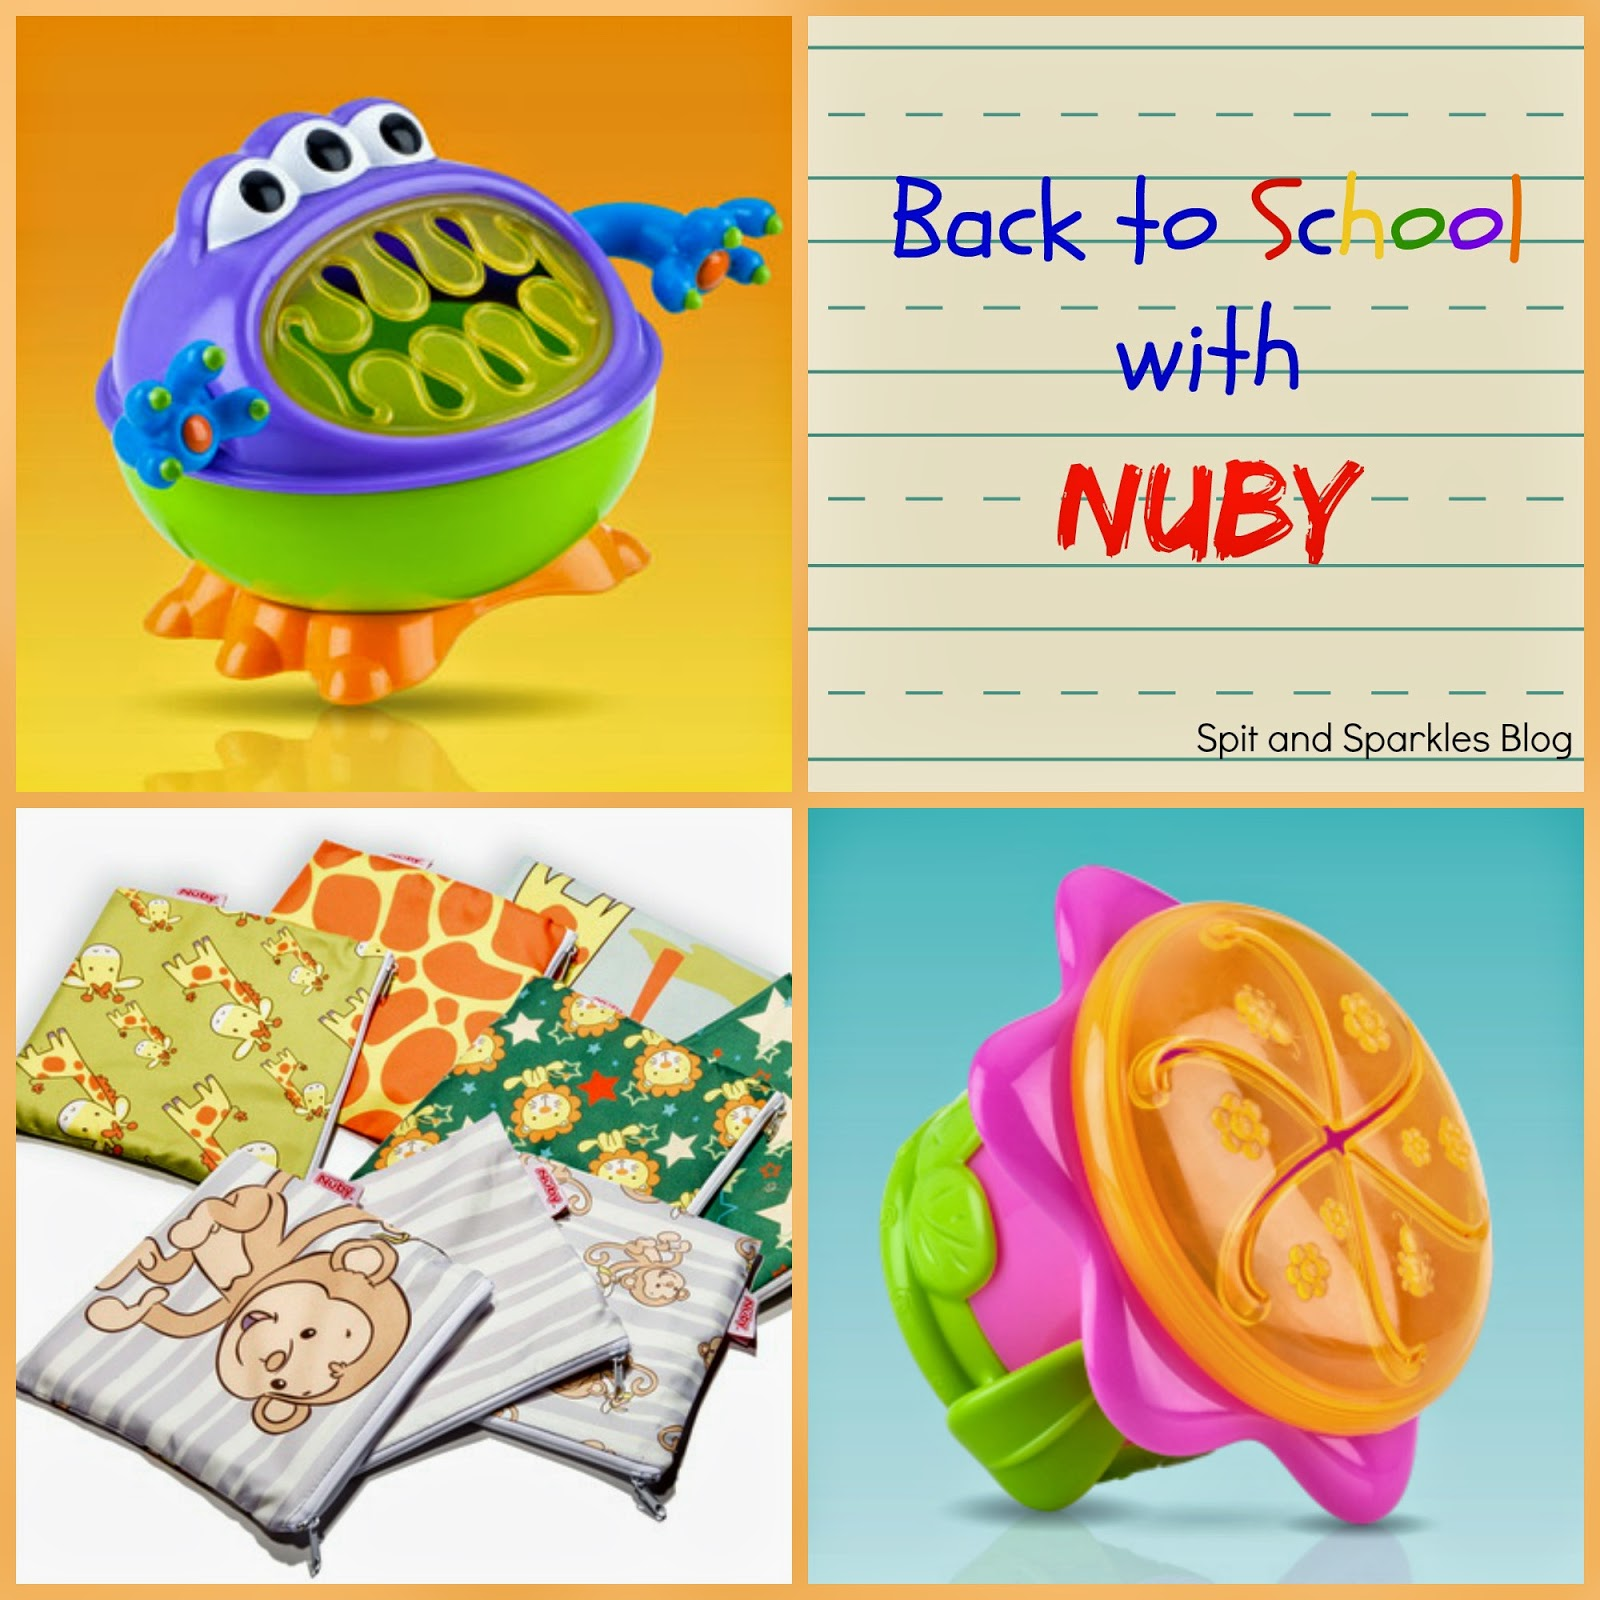 Back to school essentials from Nuby! #snacks #school #toddlers #Nuby